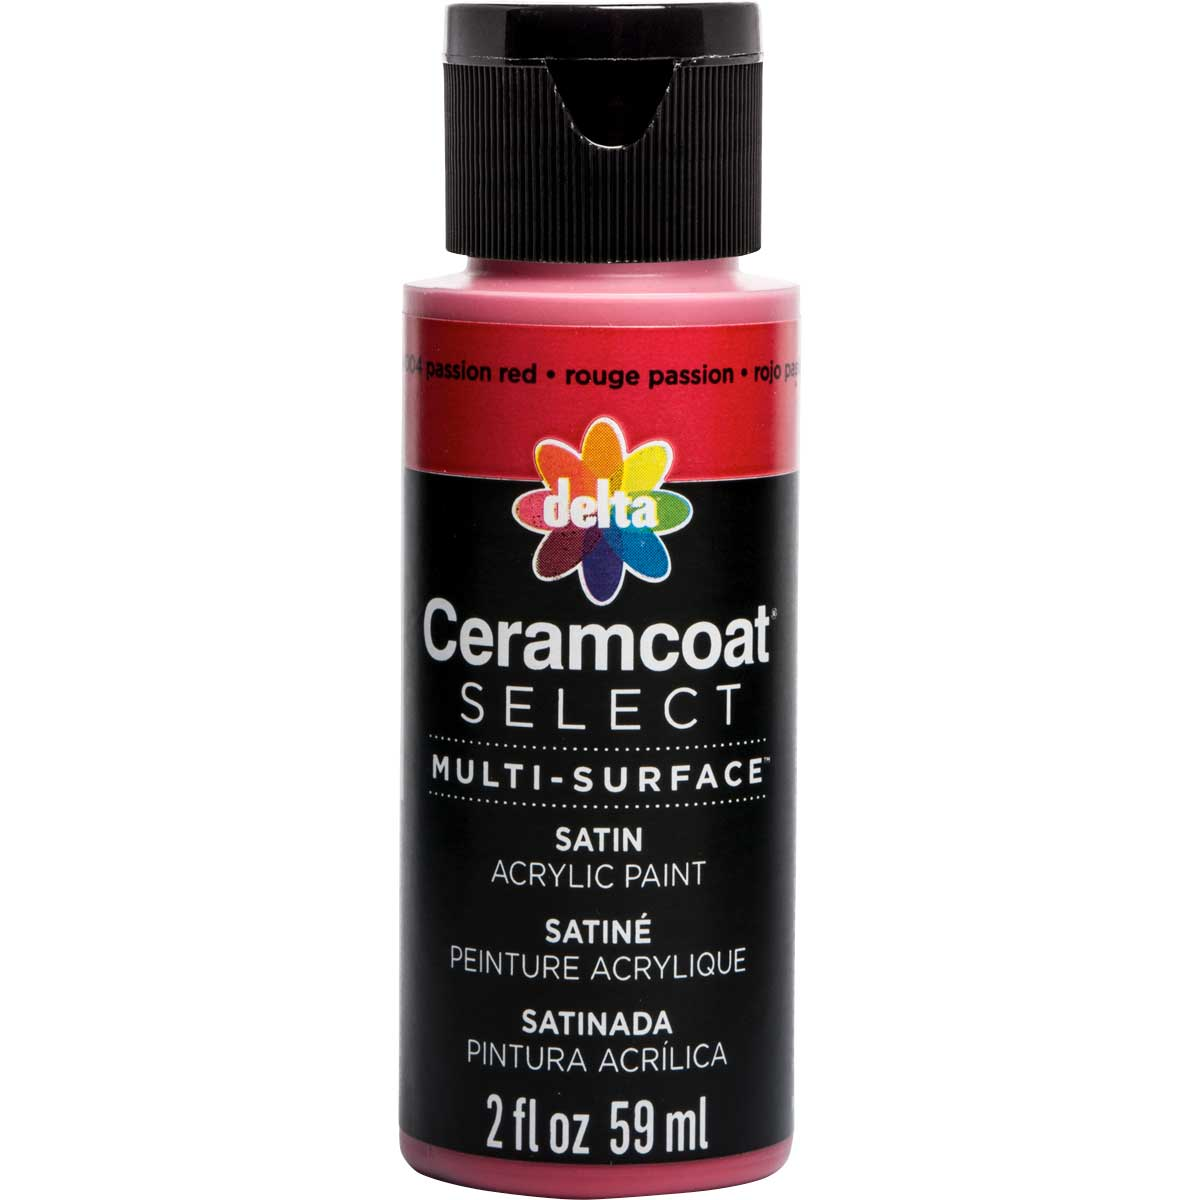 Delta Ceramcoat ® Select Multi-Surface Acrylic Paint - Satin - Passion Red, 2 oz. - 04004